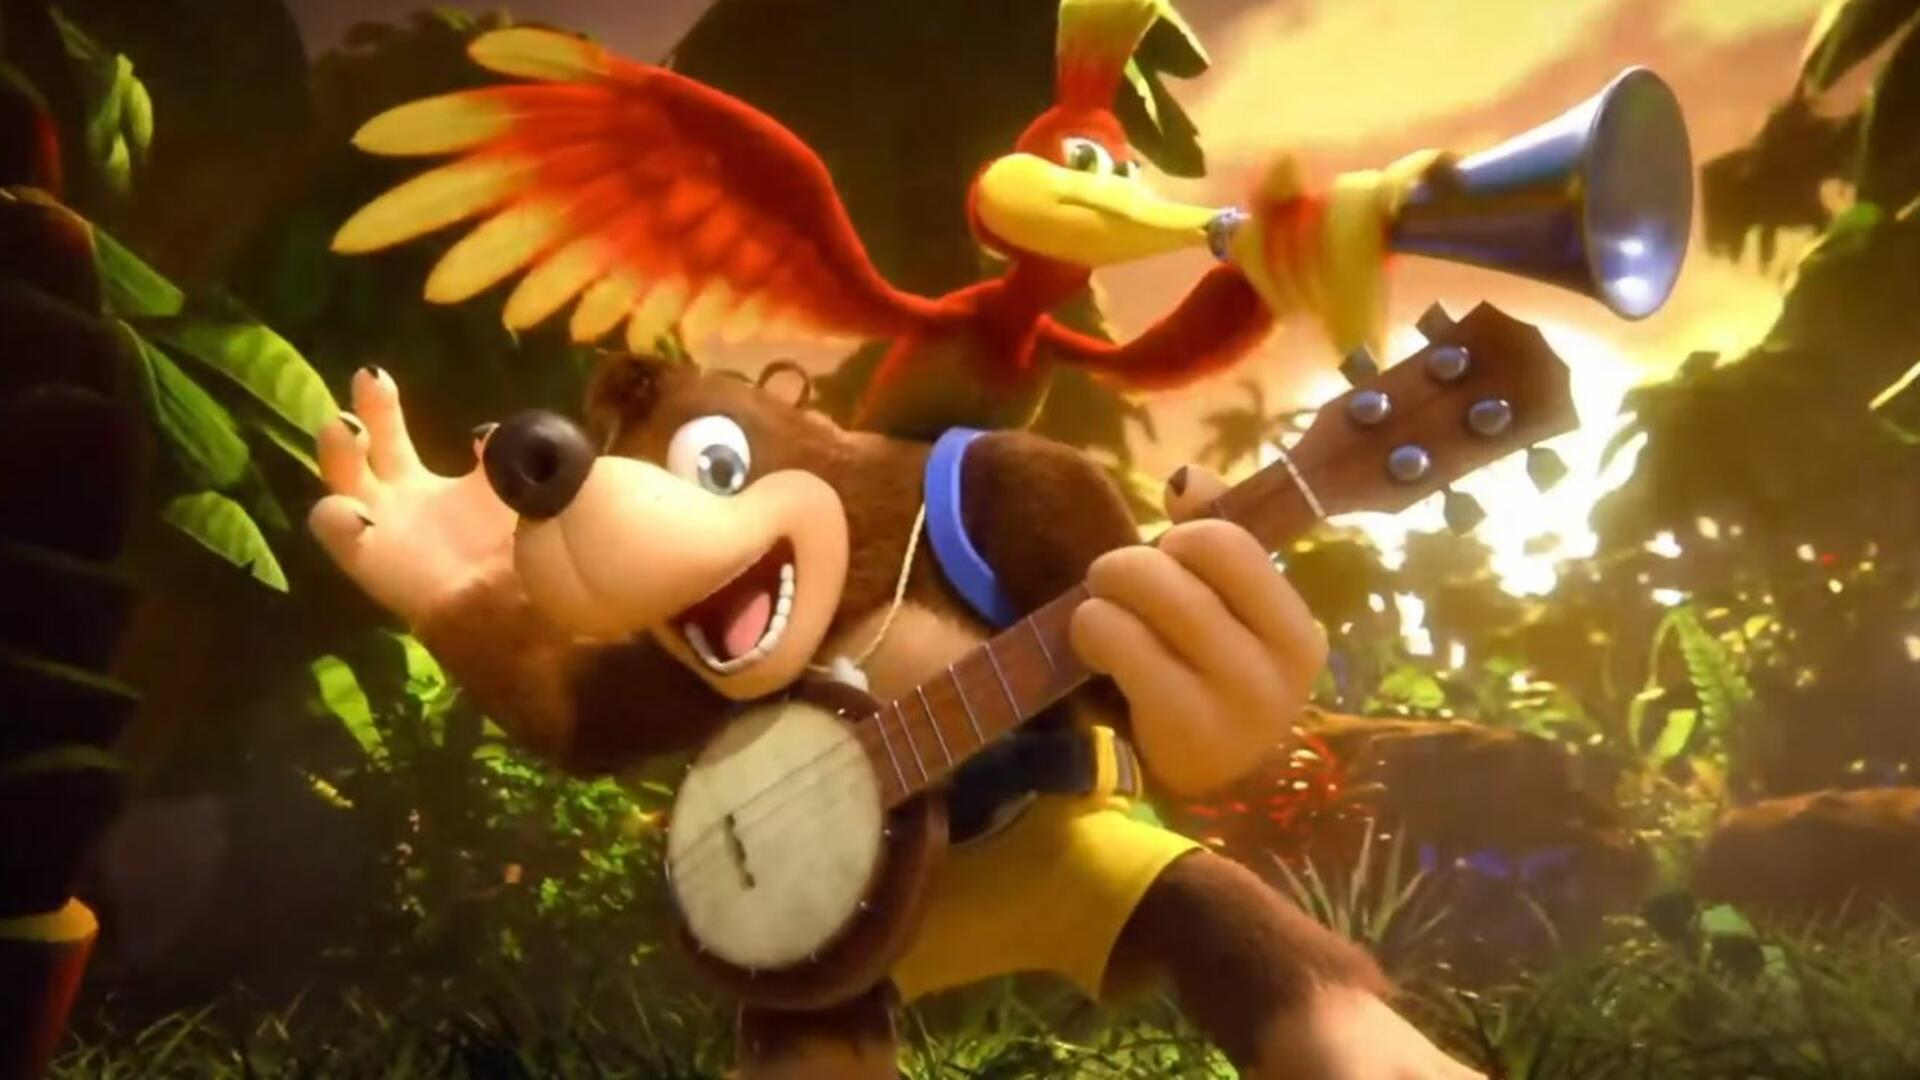 Here's What Banjo and Kazooie Look Like in The Legend of Zelda: Wind Waker